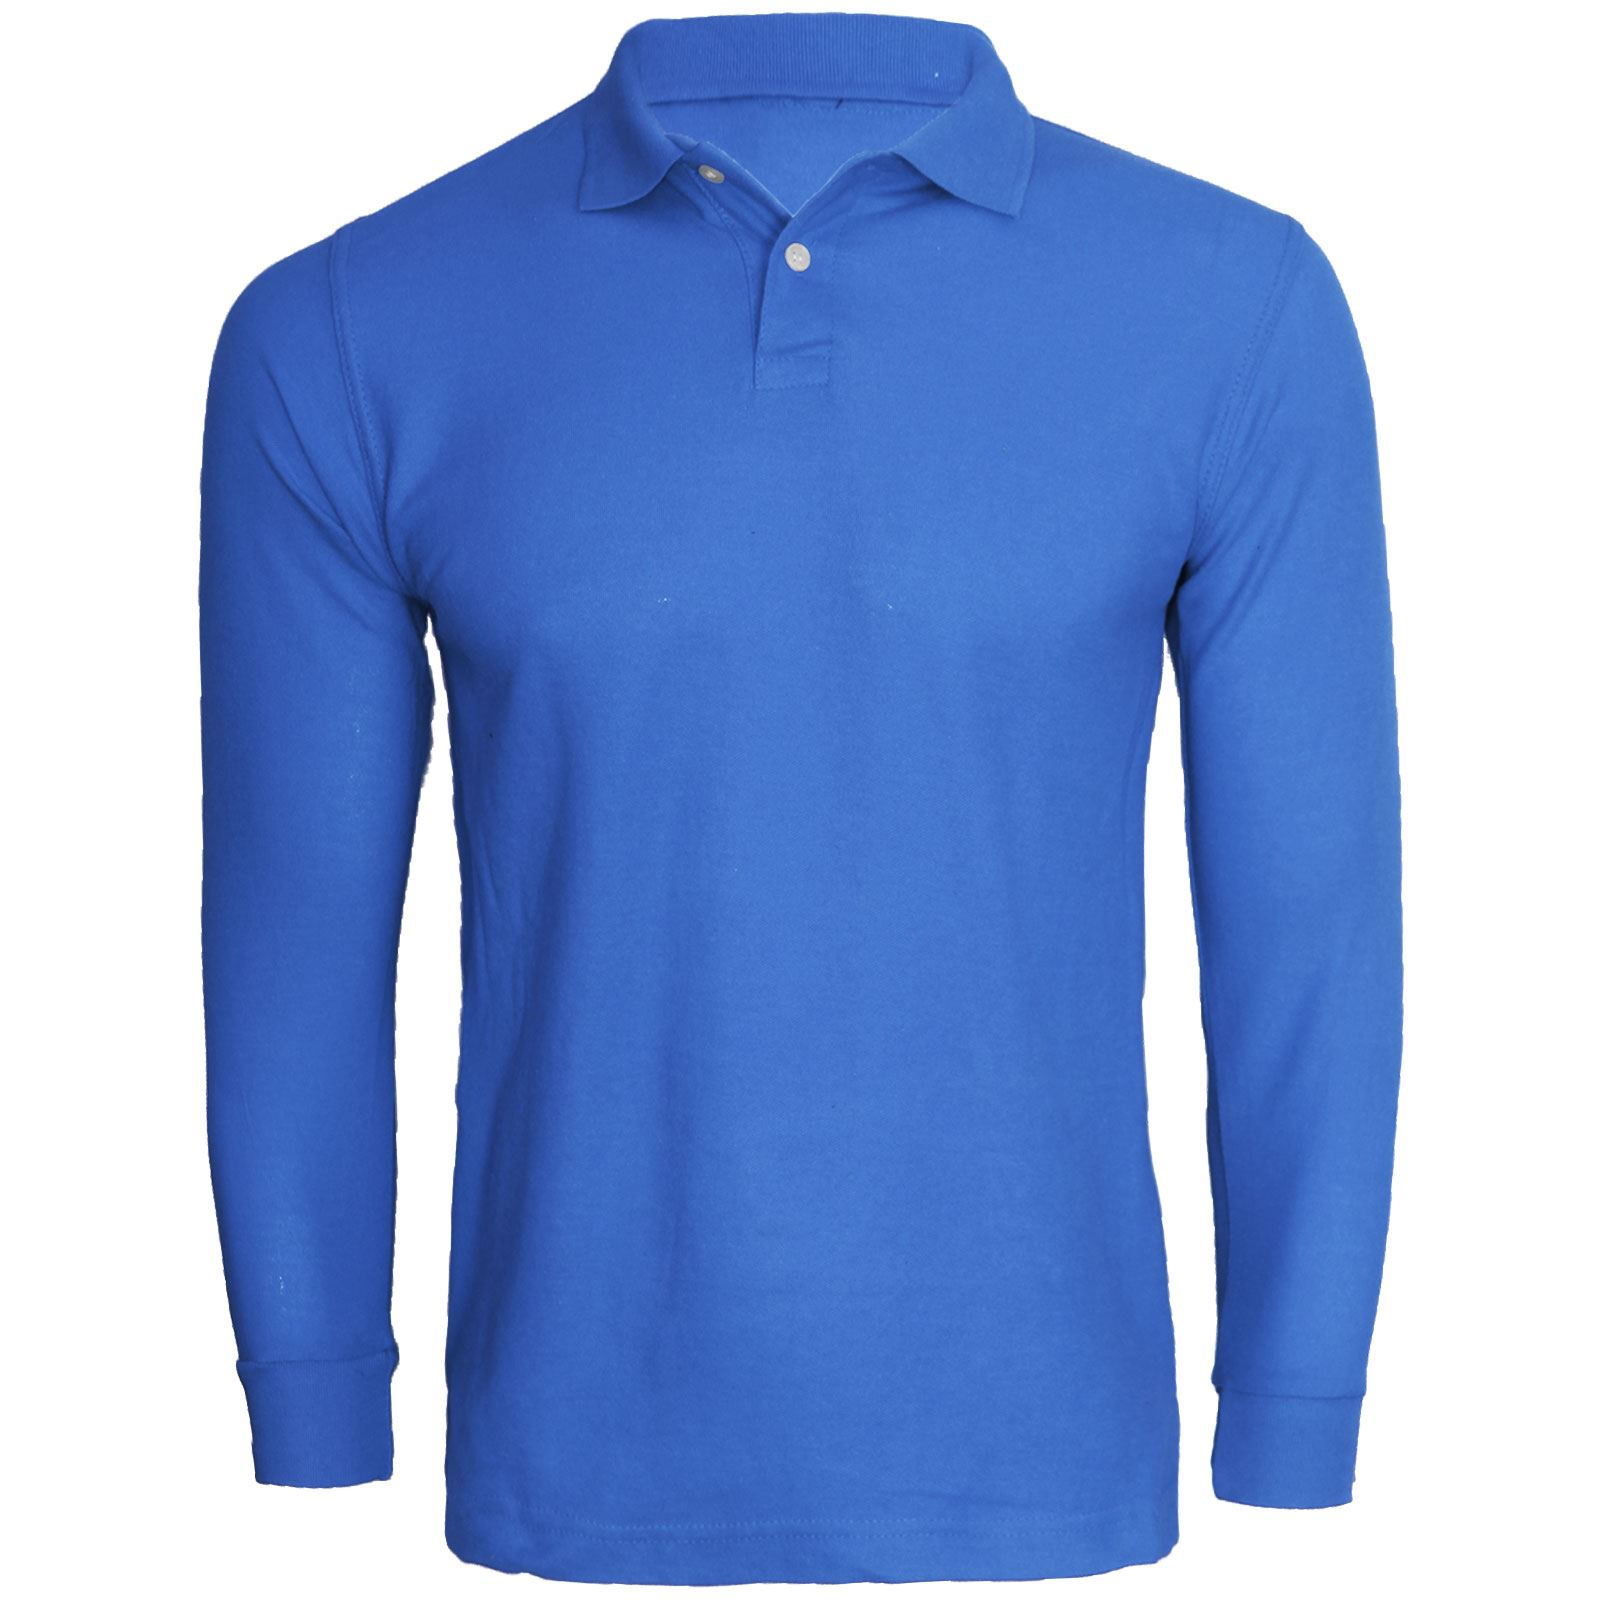 New mens long sleeve casual warm winter polo shirt pique for Mens work polo shirts